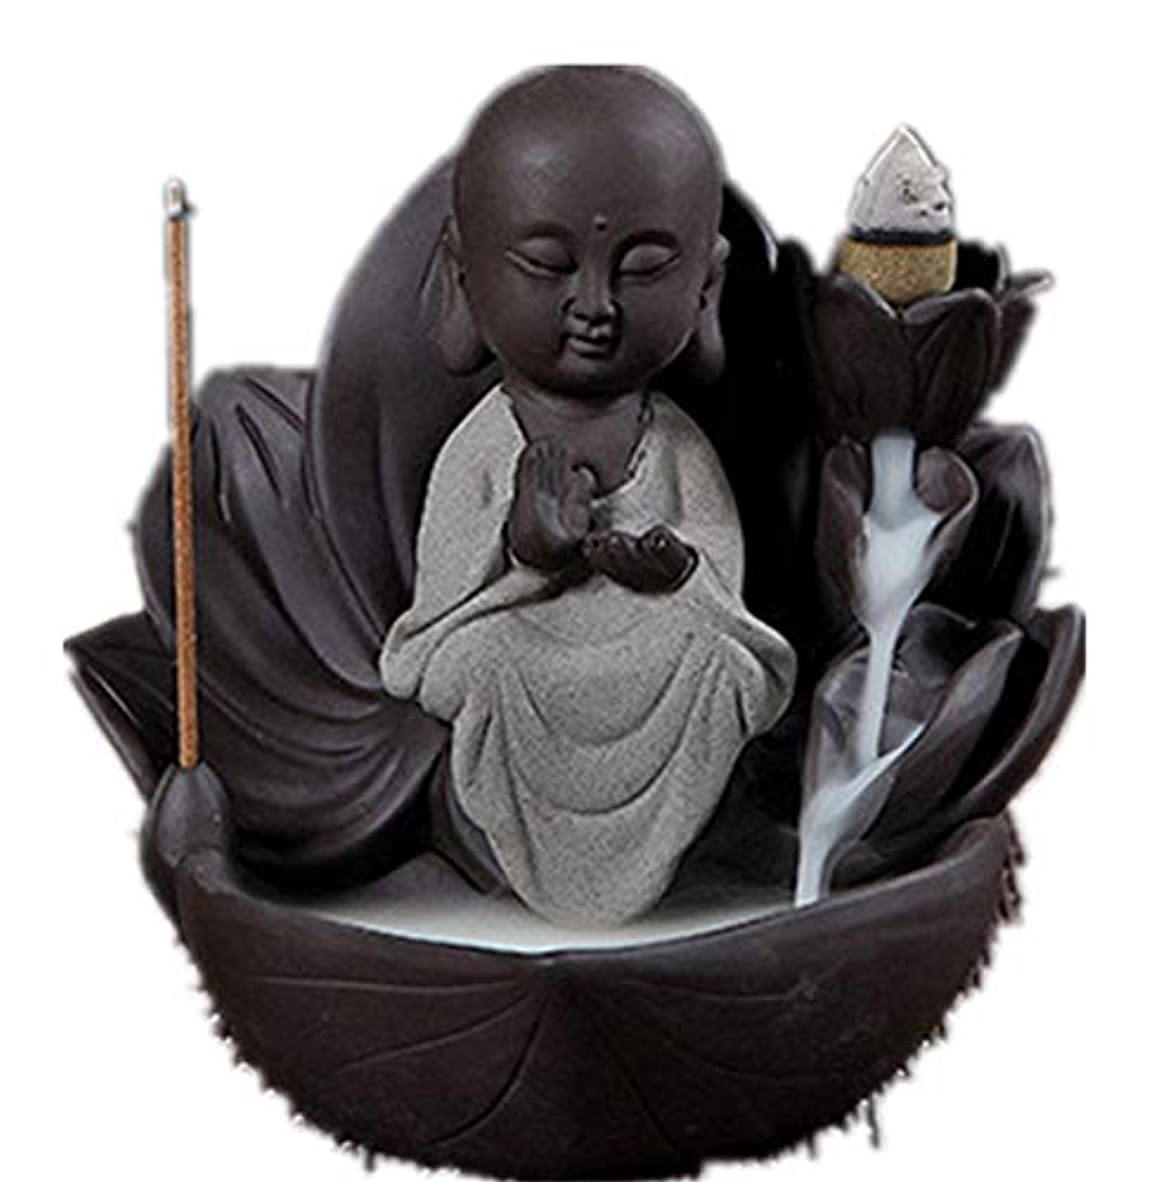 鮫ハックミリメーターXPPXPP Backflow Incense Burner, Household Ceramic Returning Cone-shaped Candlestick Burner